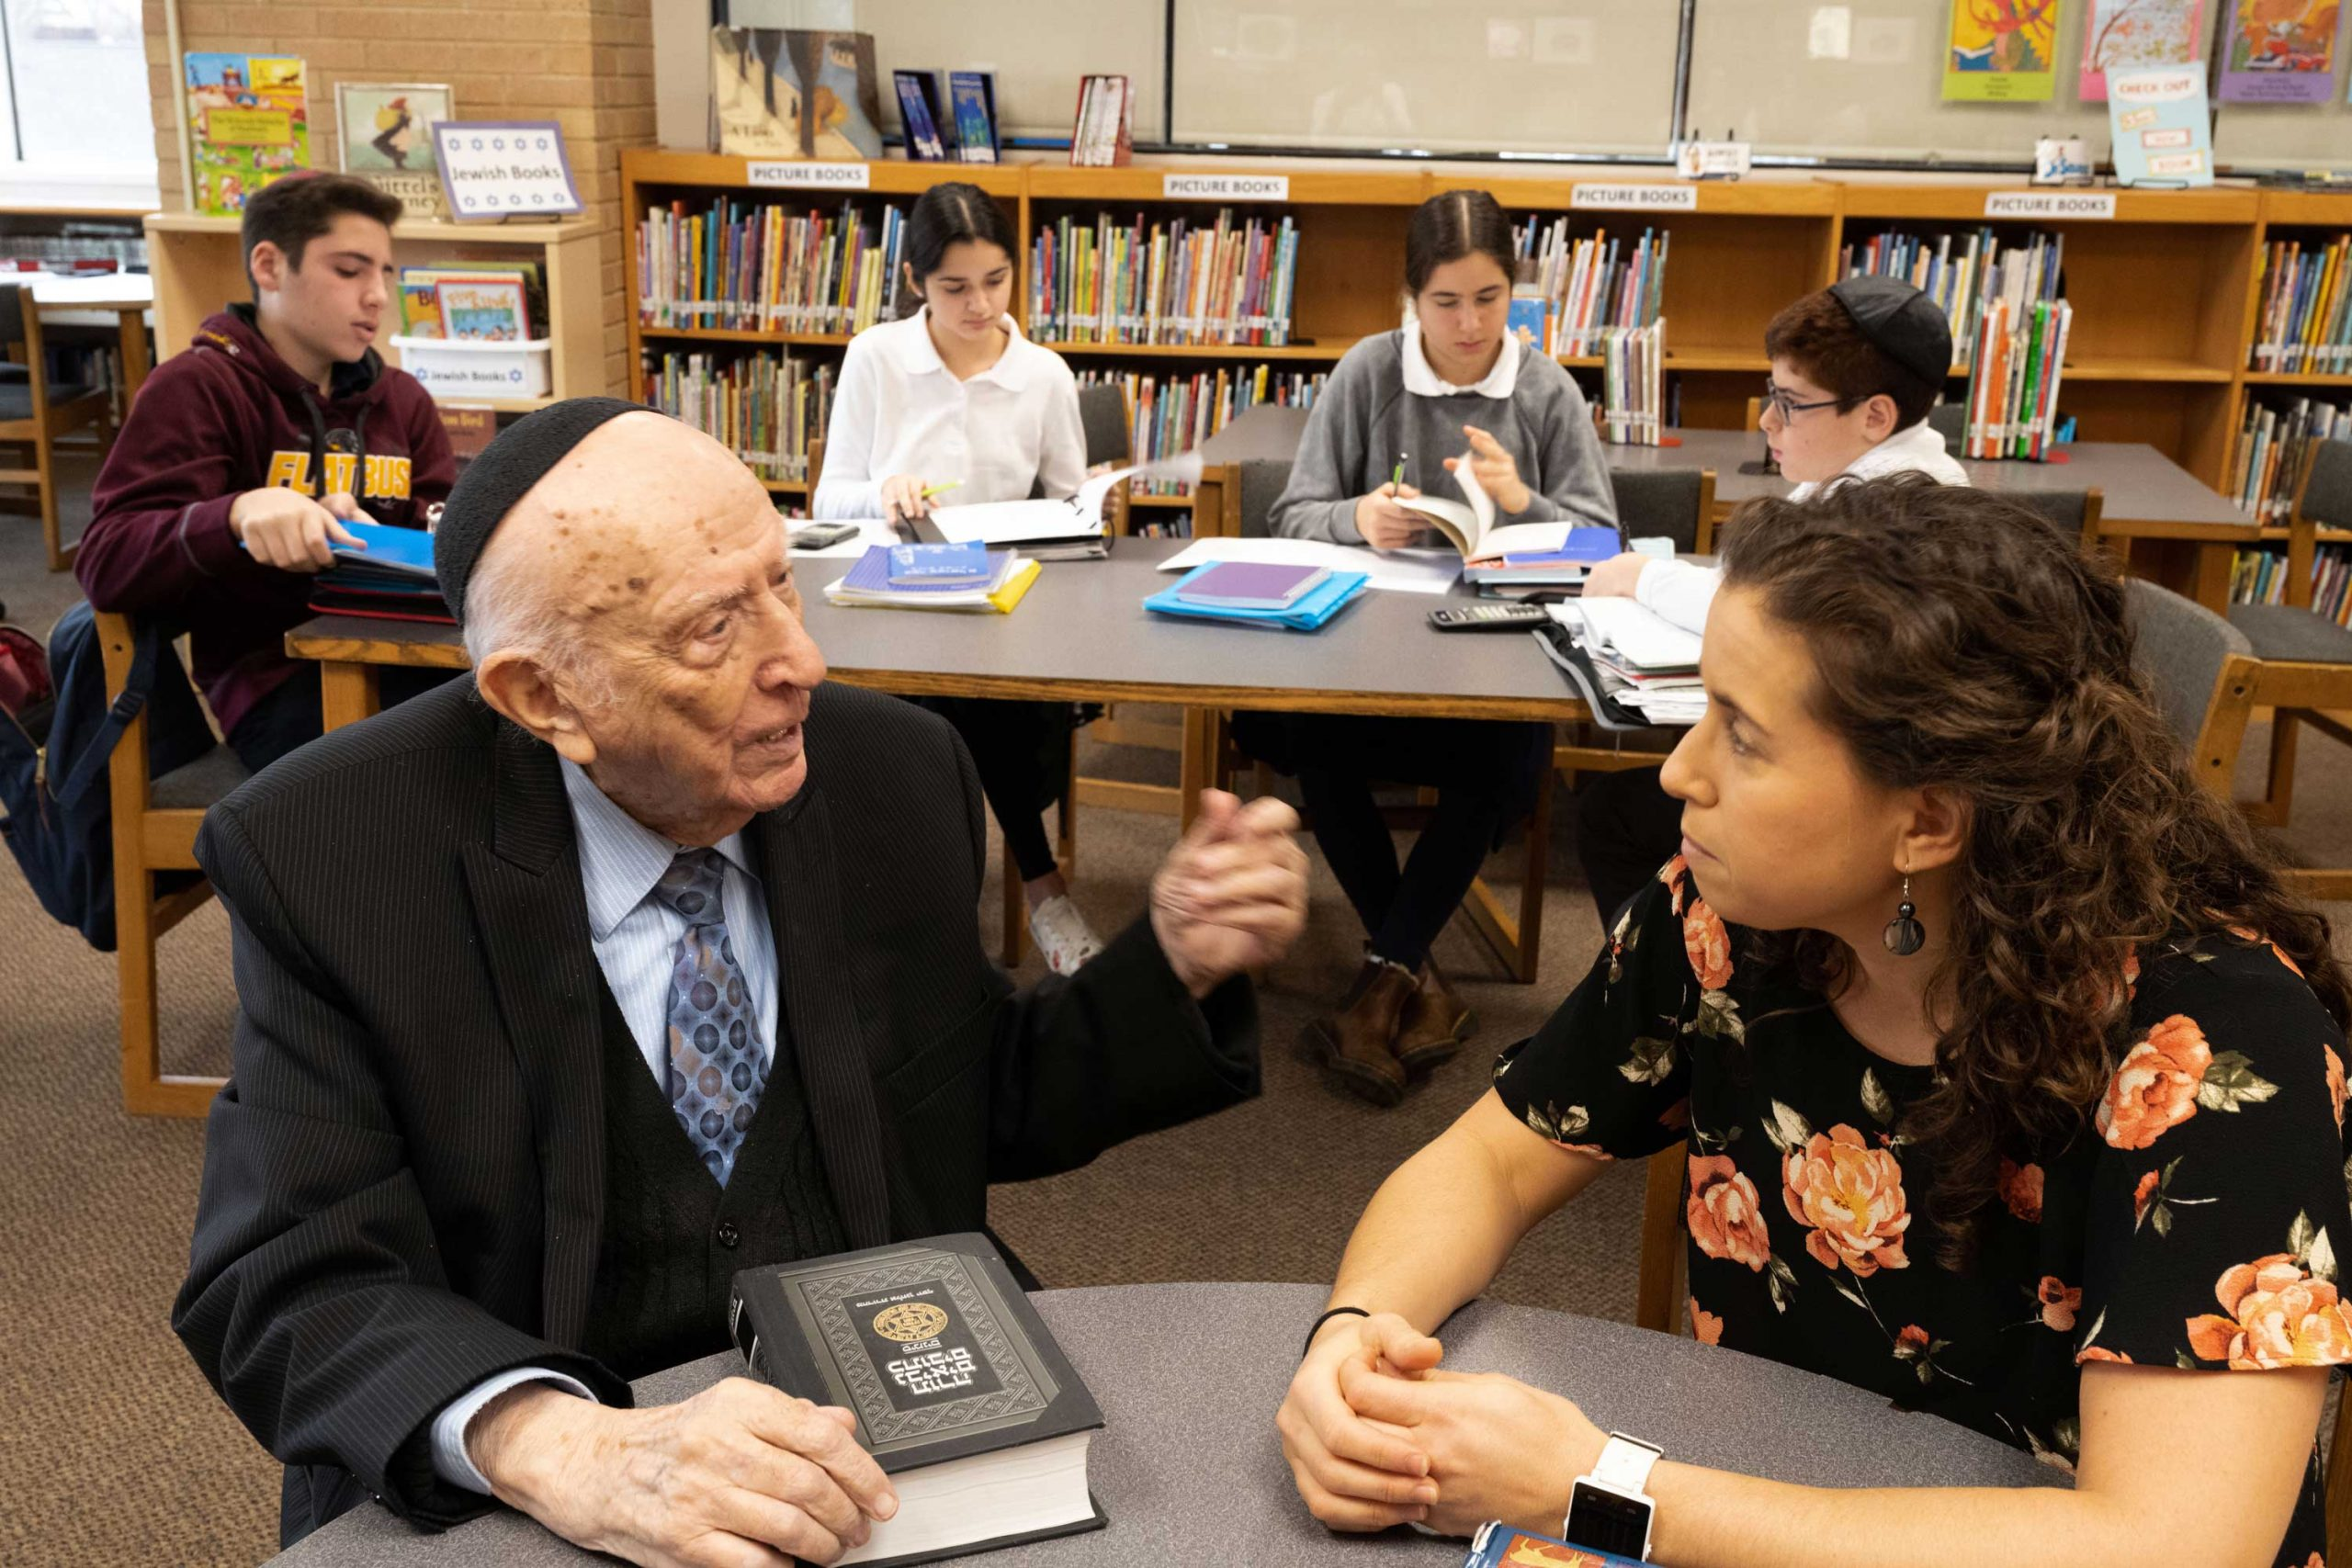 Be Committed to Inspiring Your Students: Rabbi David Eliach's Legacy of Mentorship